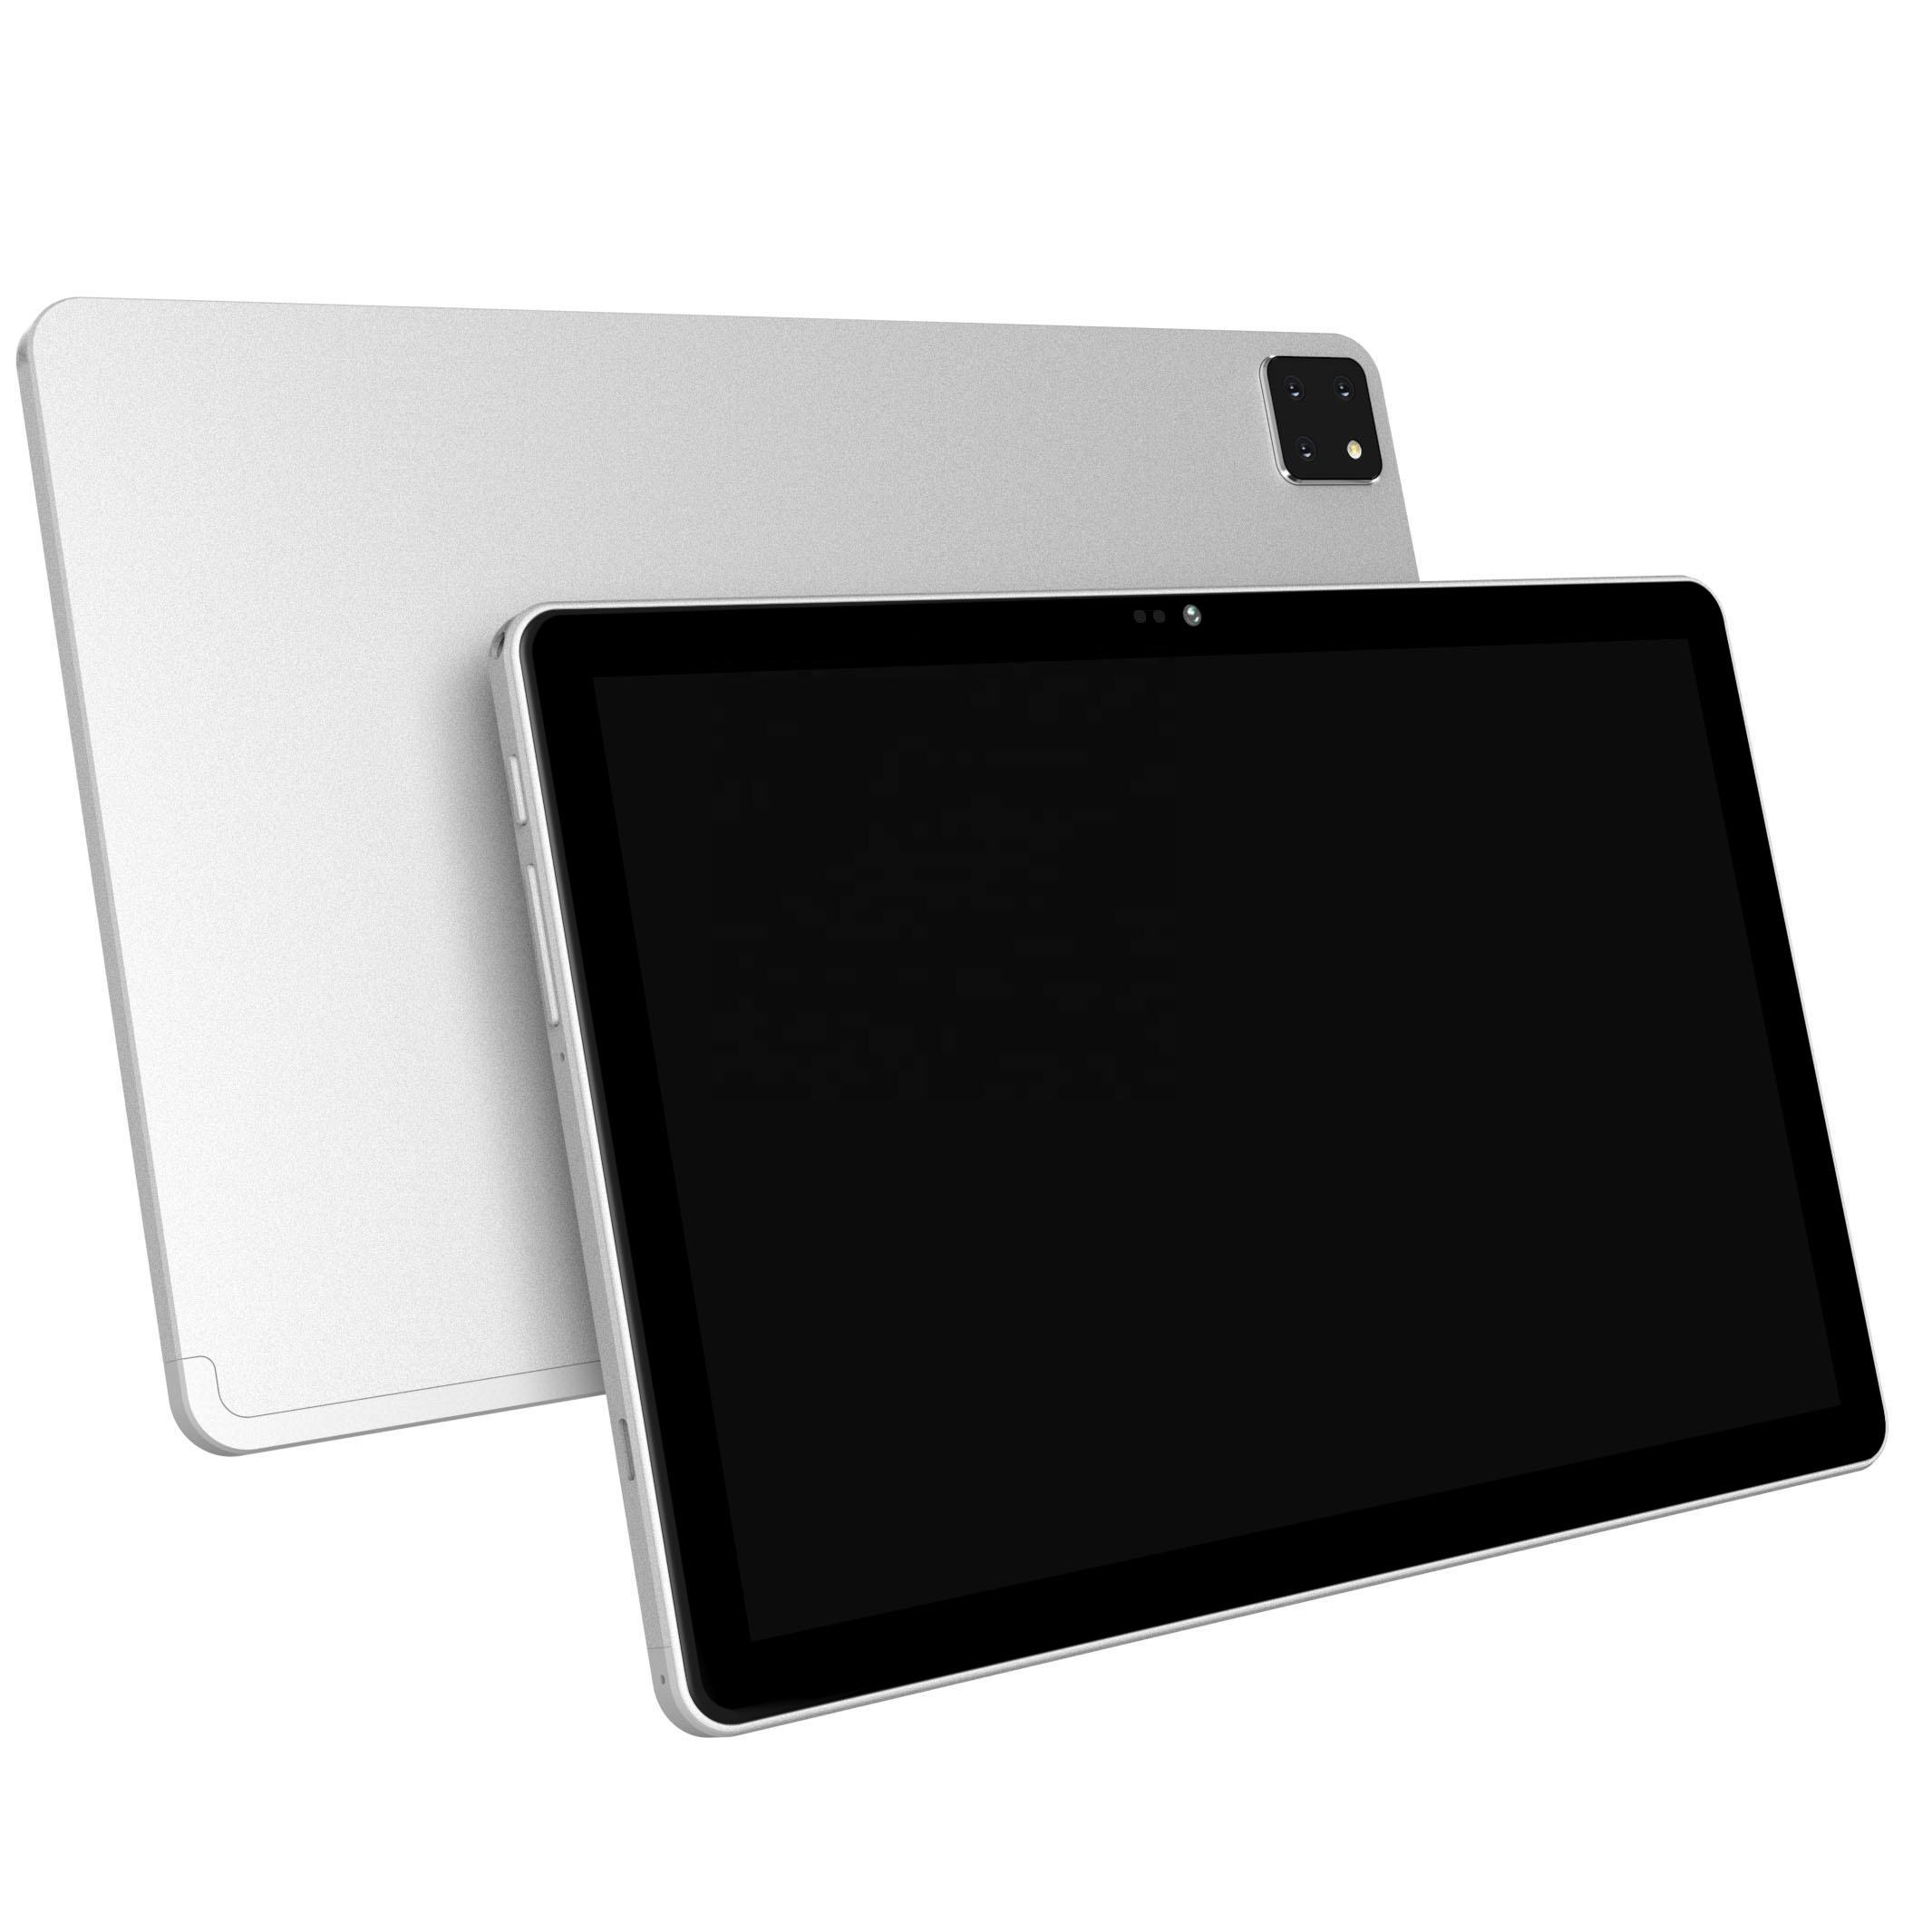 MTK6739 quad core design unico 10.1 pollici HD 4G LTE <span class=keywords><strong>tablet</strong></span> <span class=keywords><strong>PC</strong></span>